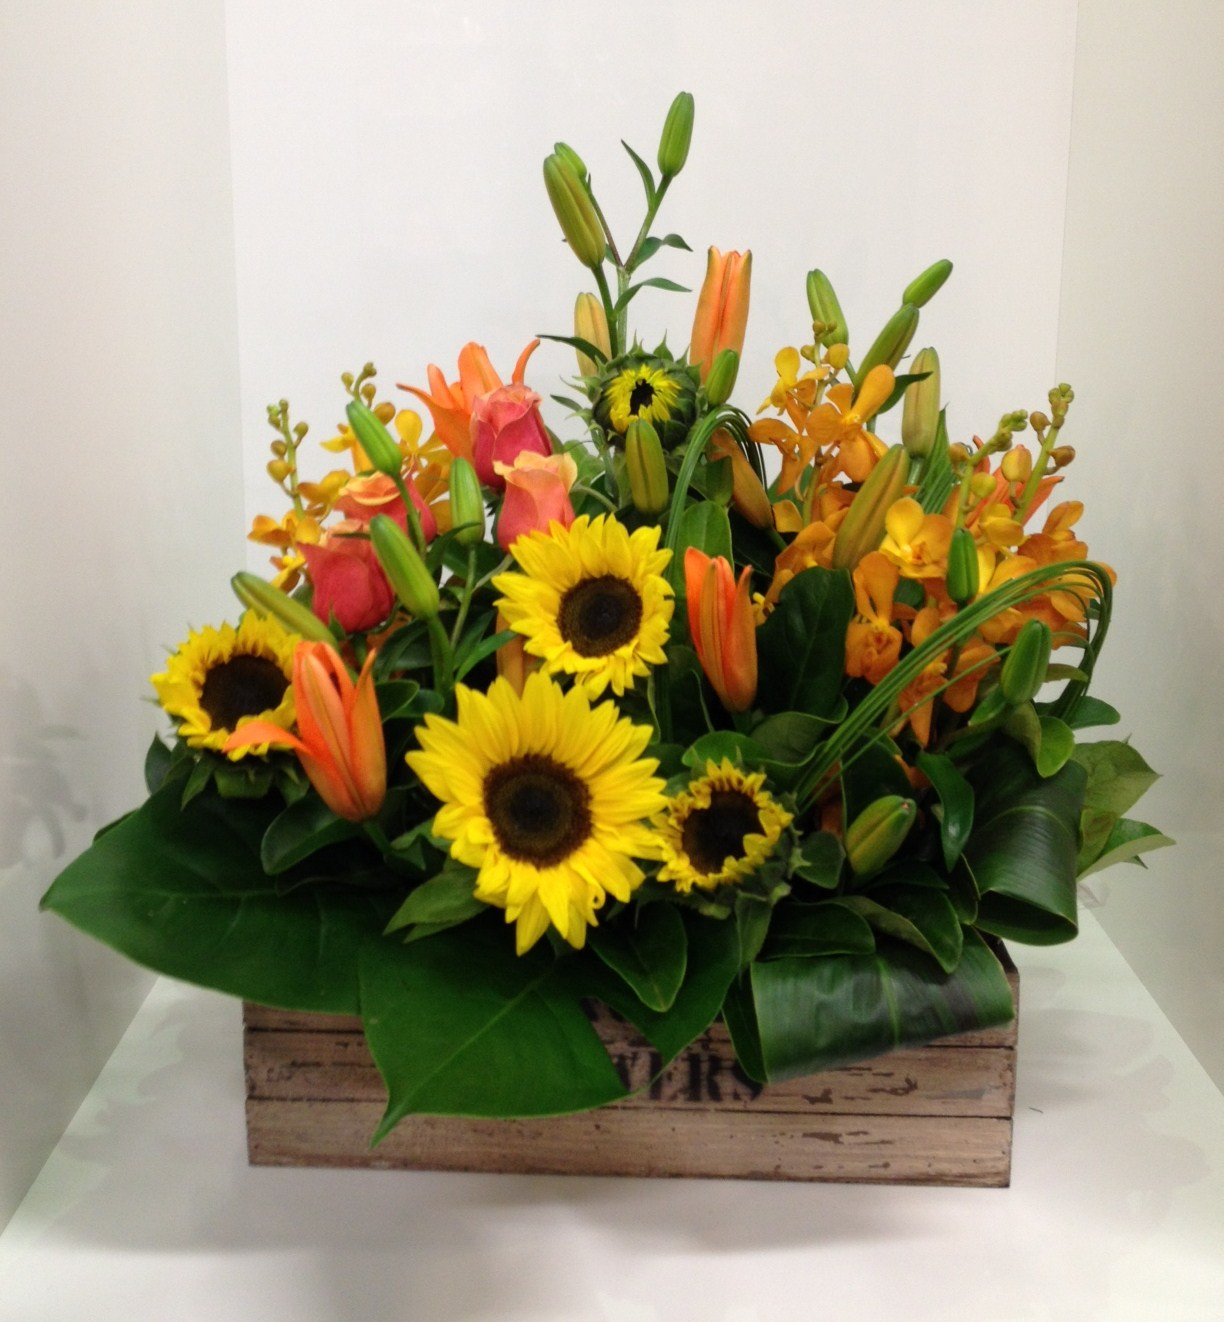 A Rustic Crate Arrangement